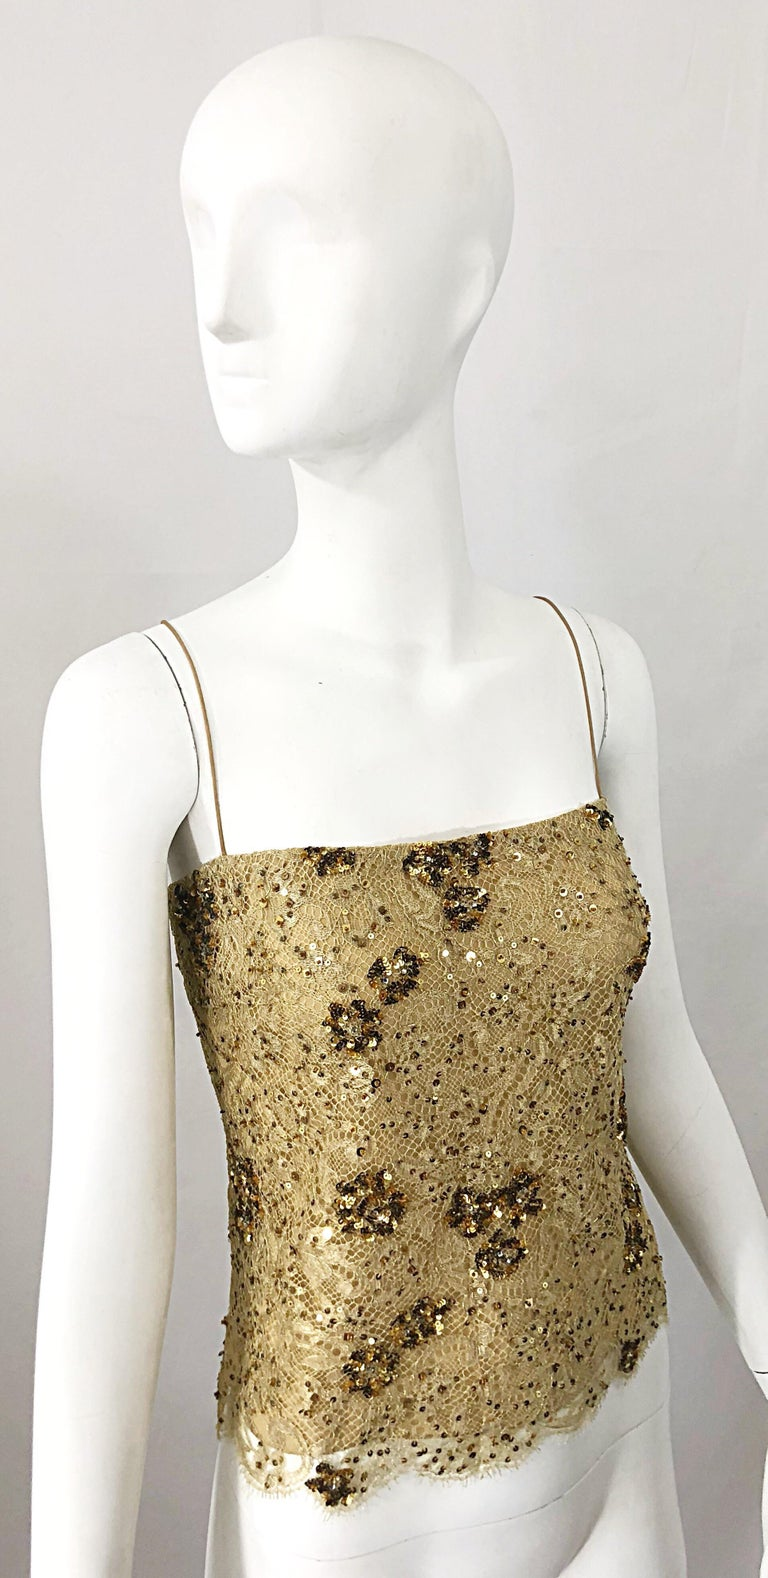 1990s Badgley Mischka Size 10 / 12 Gold Lace Sequins and Beads Vintage 90s Top In Excellent Condition For Sale In Chicago, IL